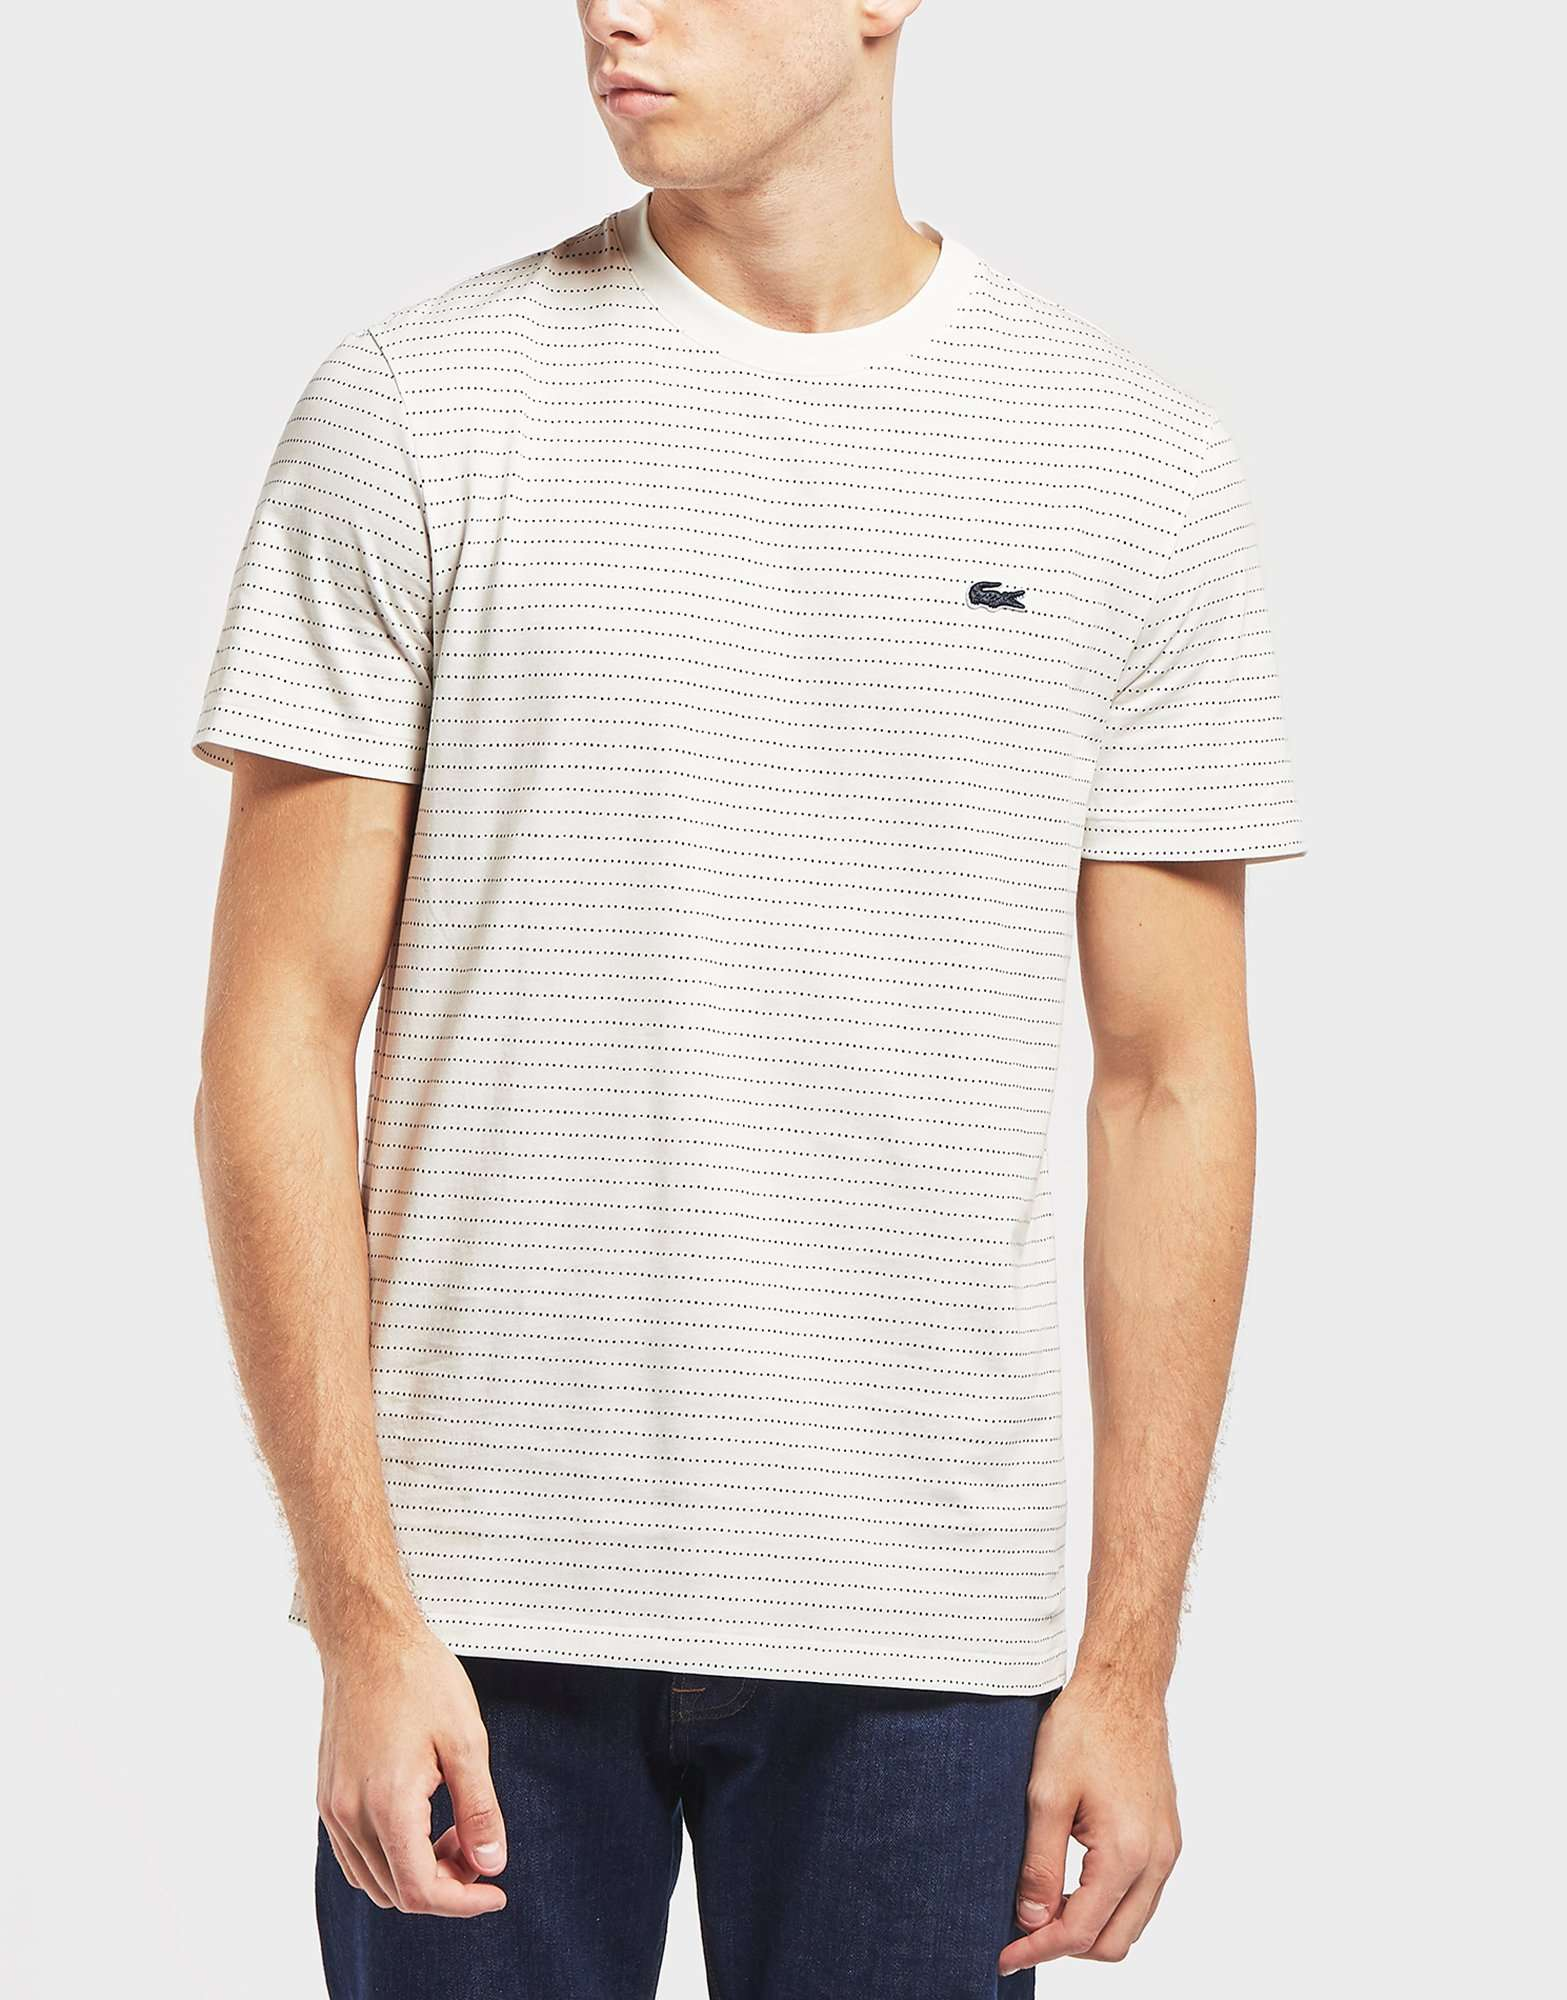 Lacoste Dot Stripe Short Sleeve T-Shirt